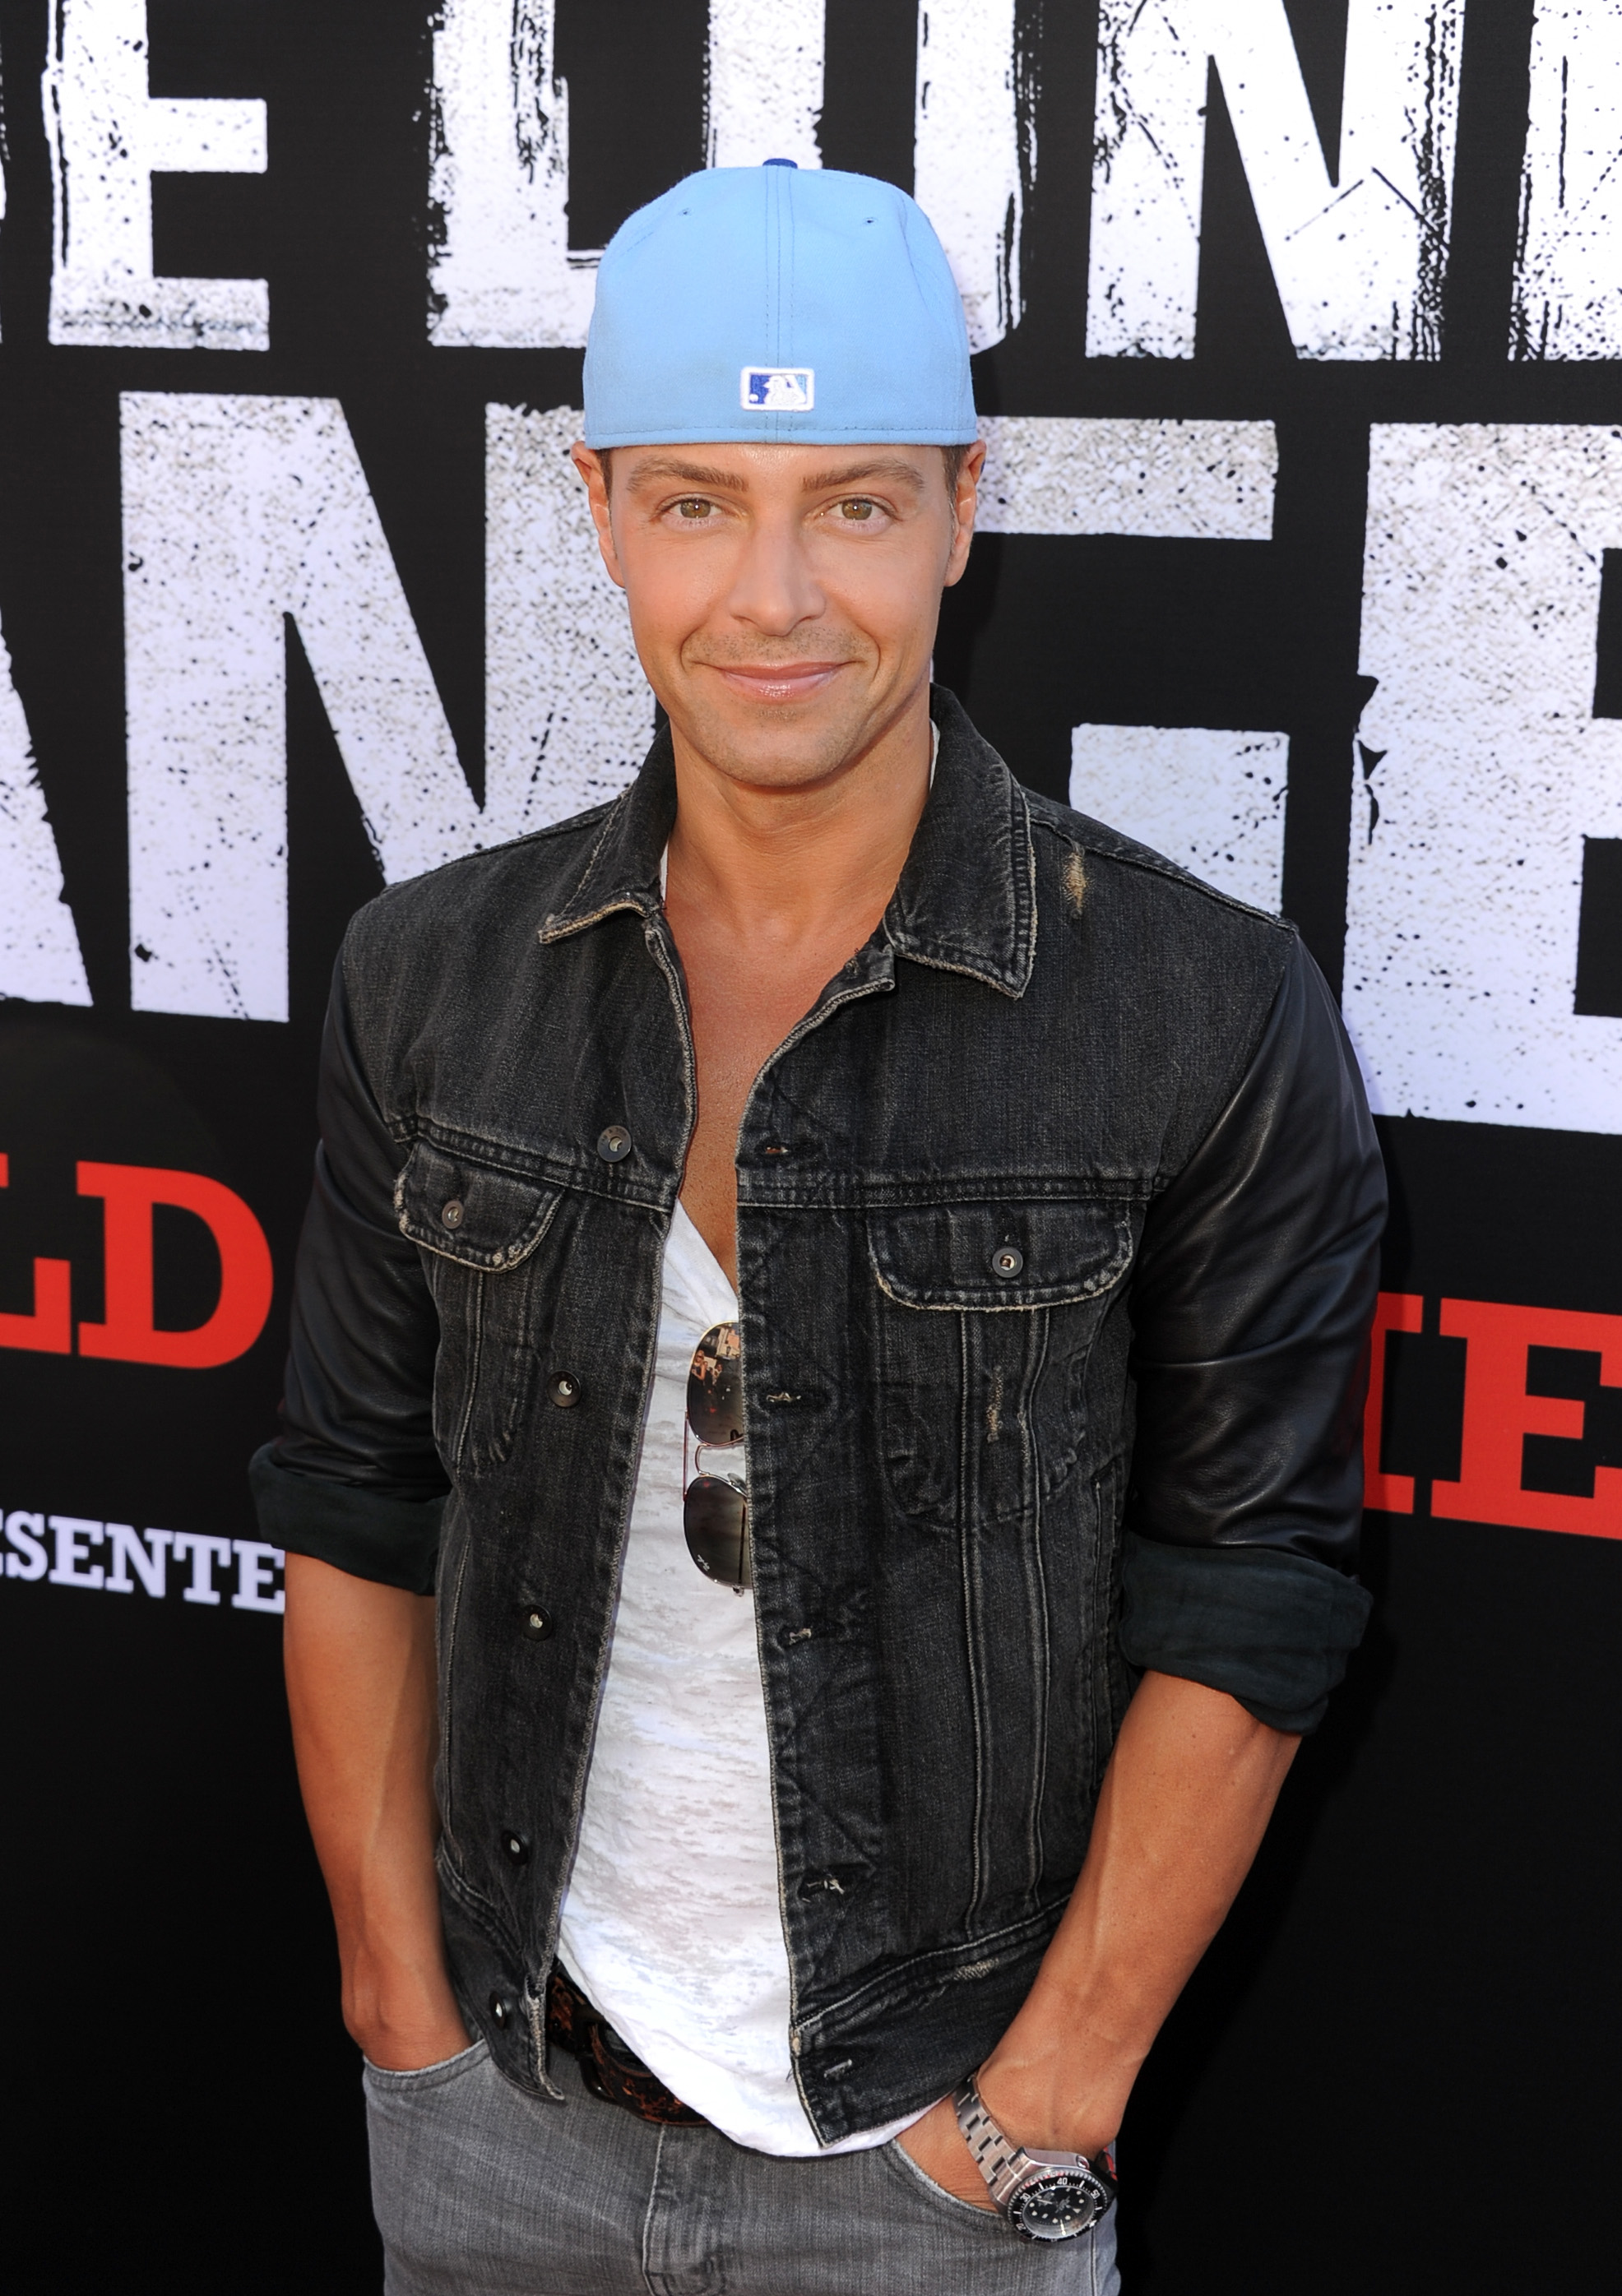 Joey Lawrence Celebrity Big Brother, Who is Joey Lawrence on Celebrity Big Brother